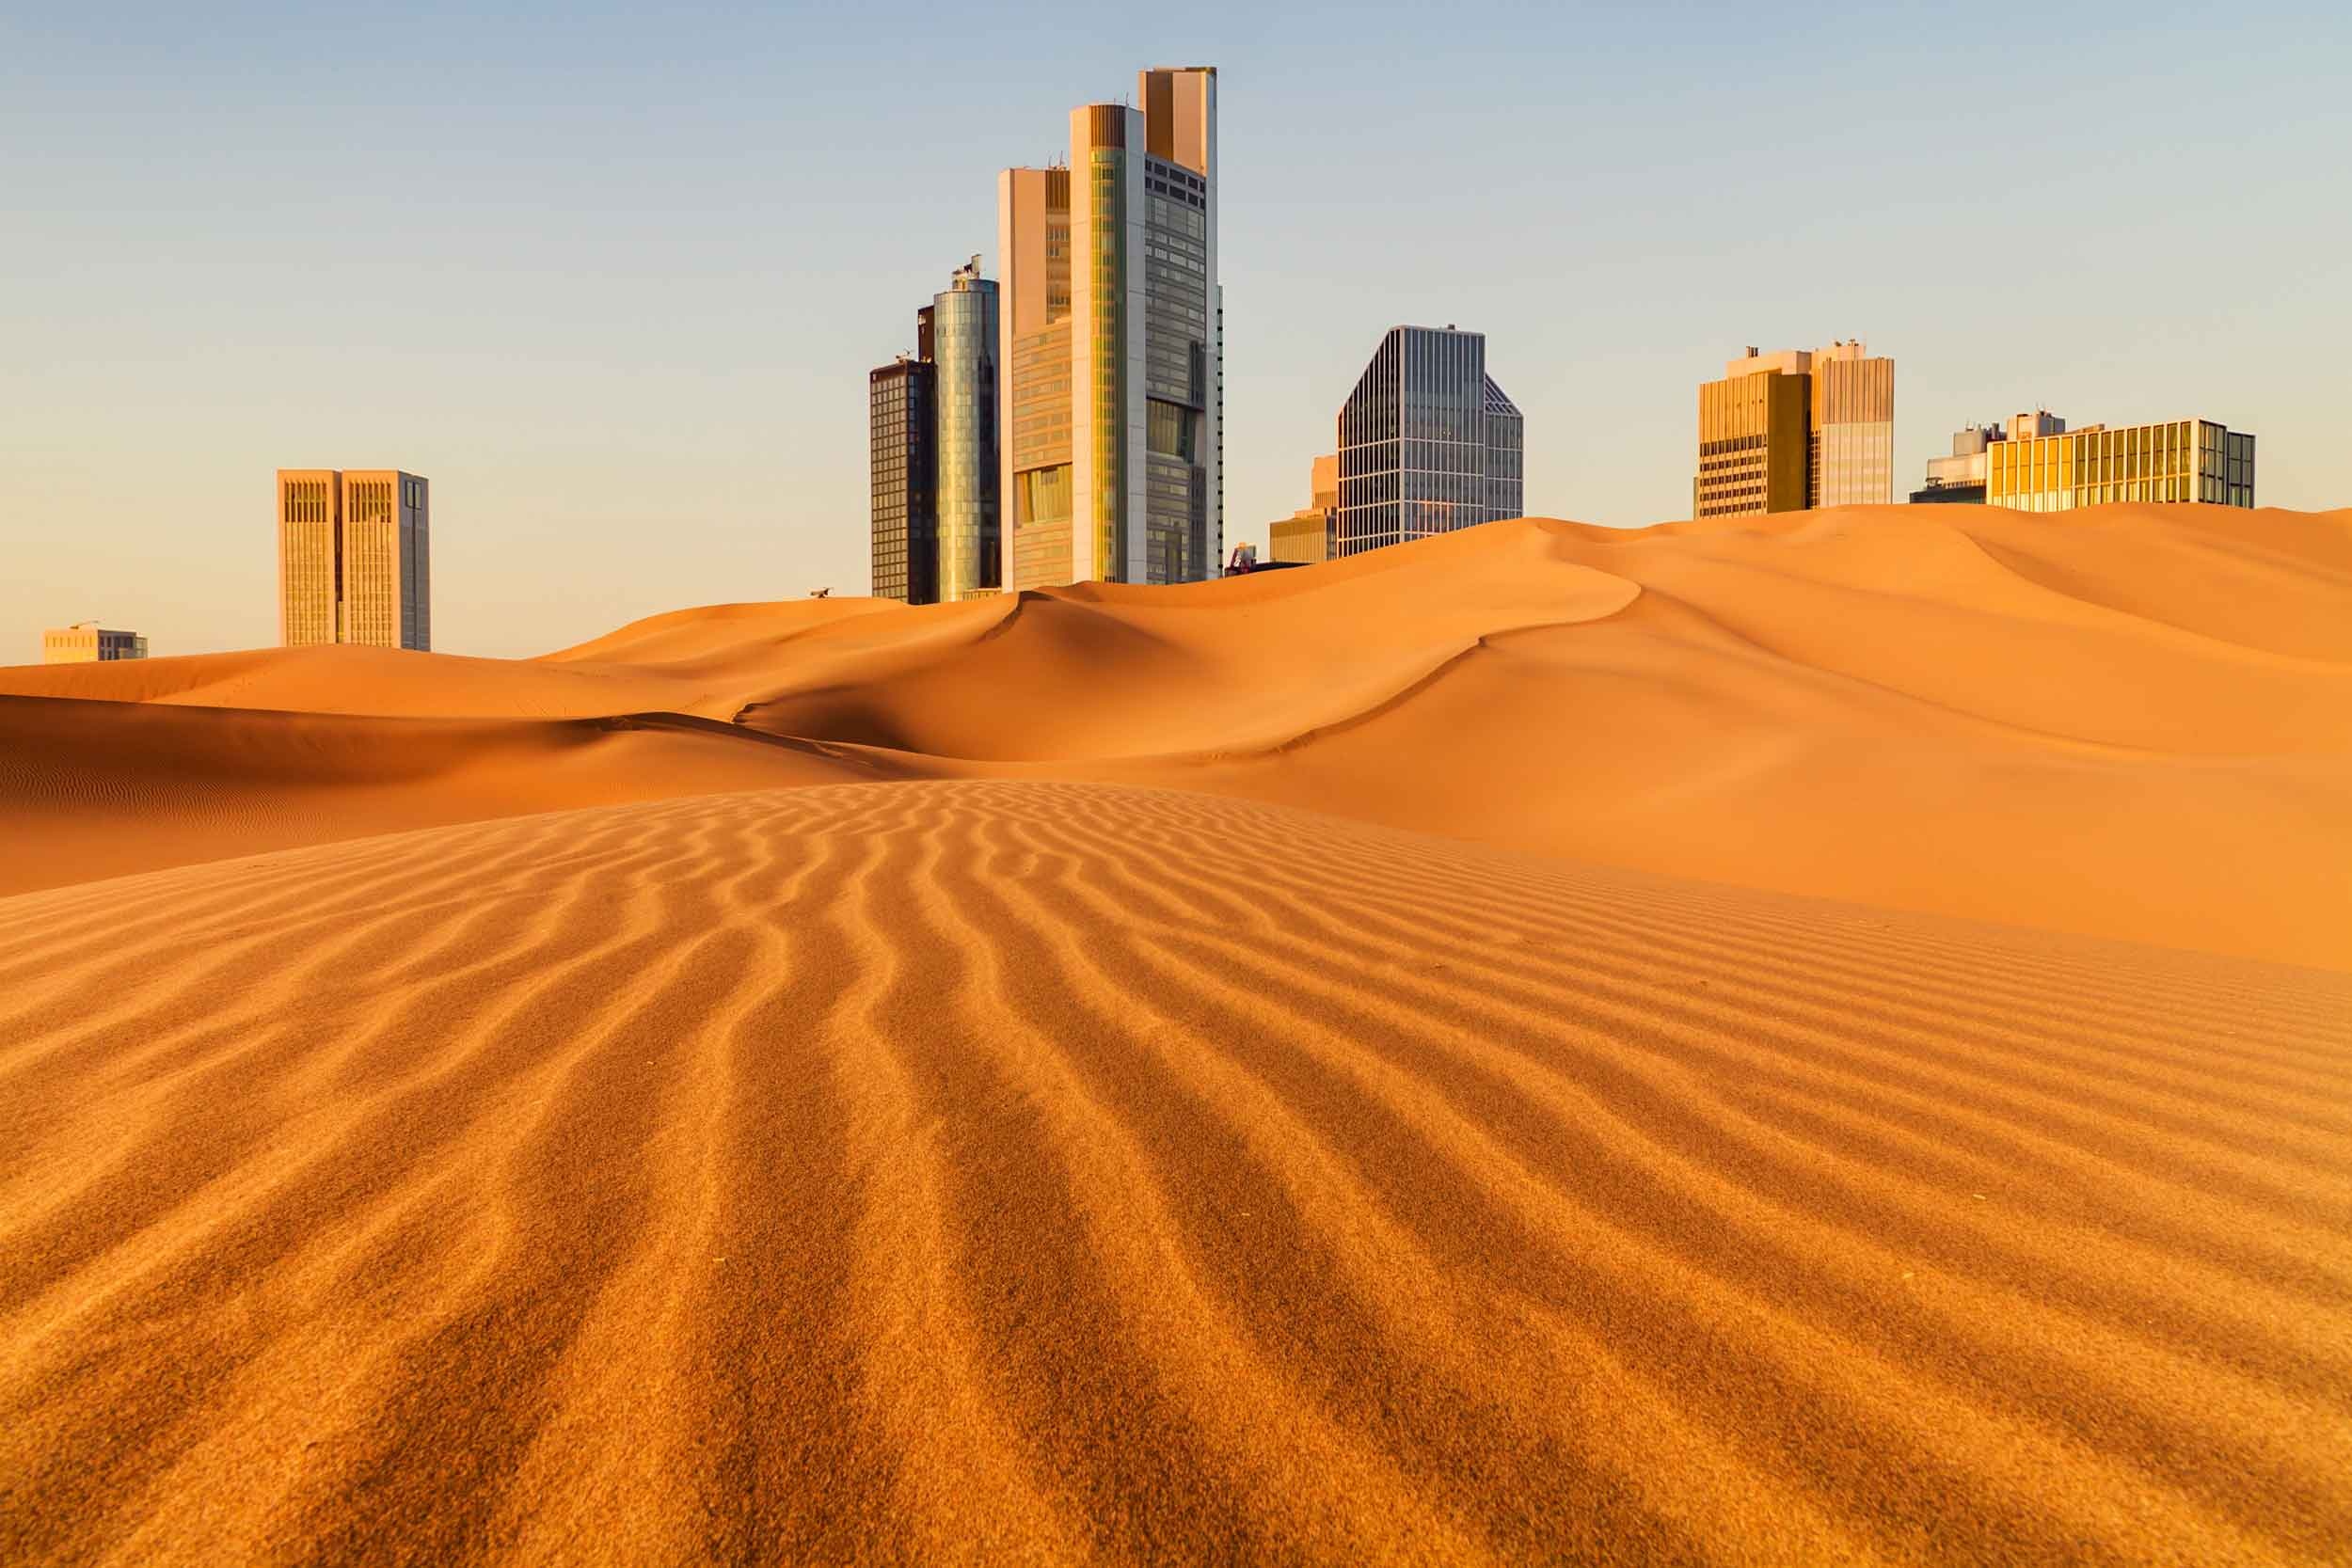 Image of a city behind a desert